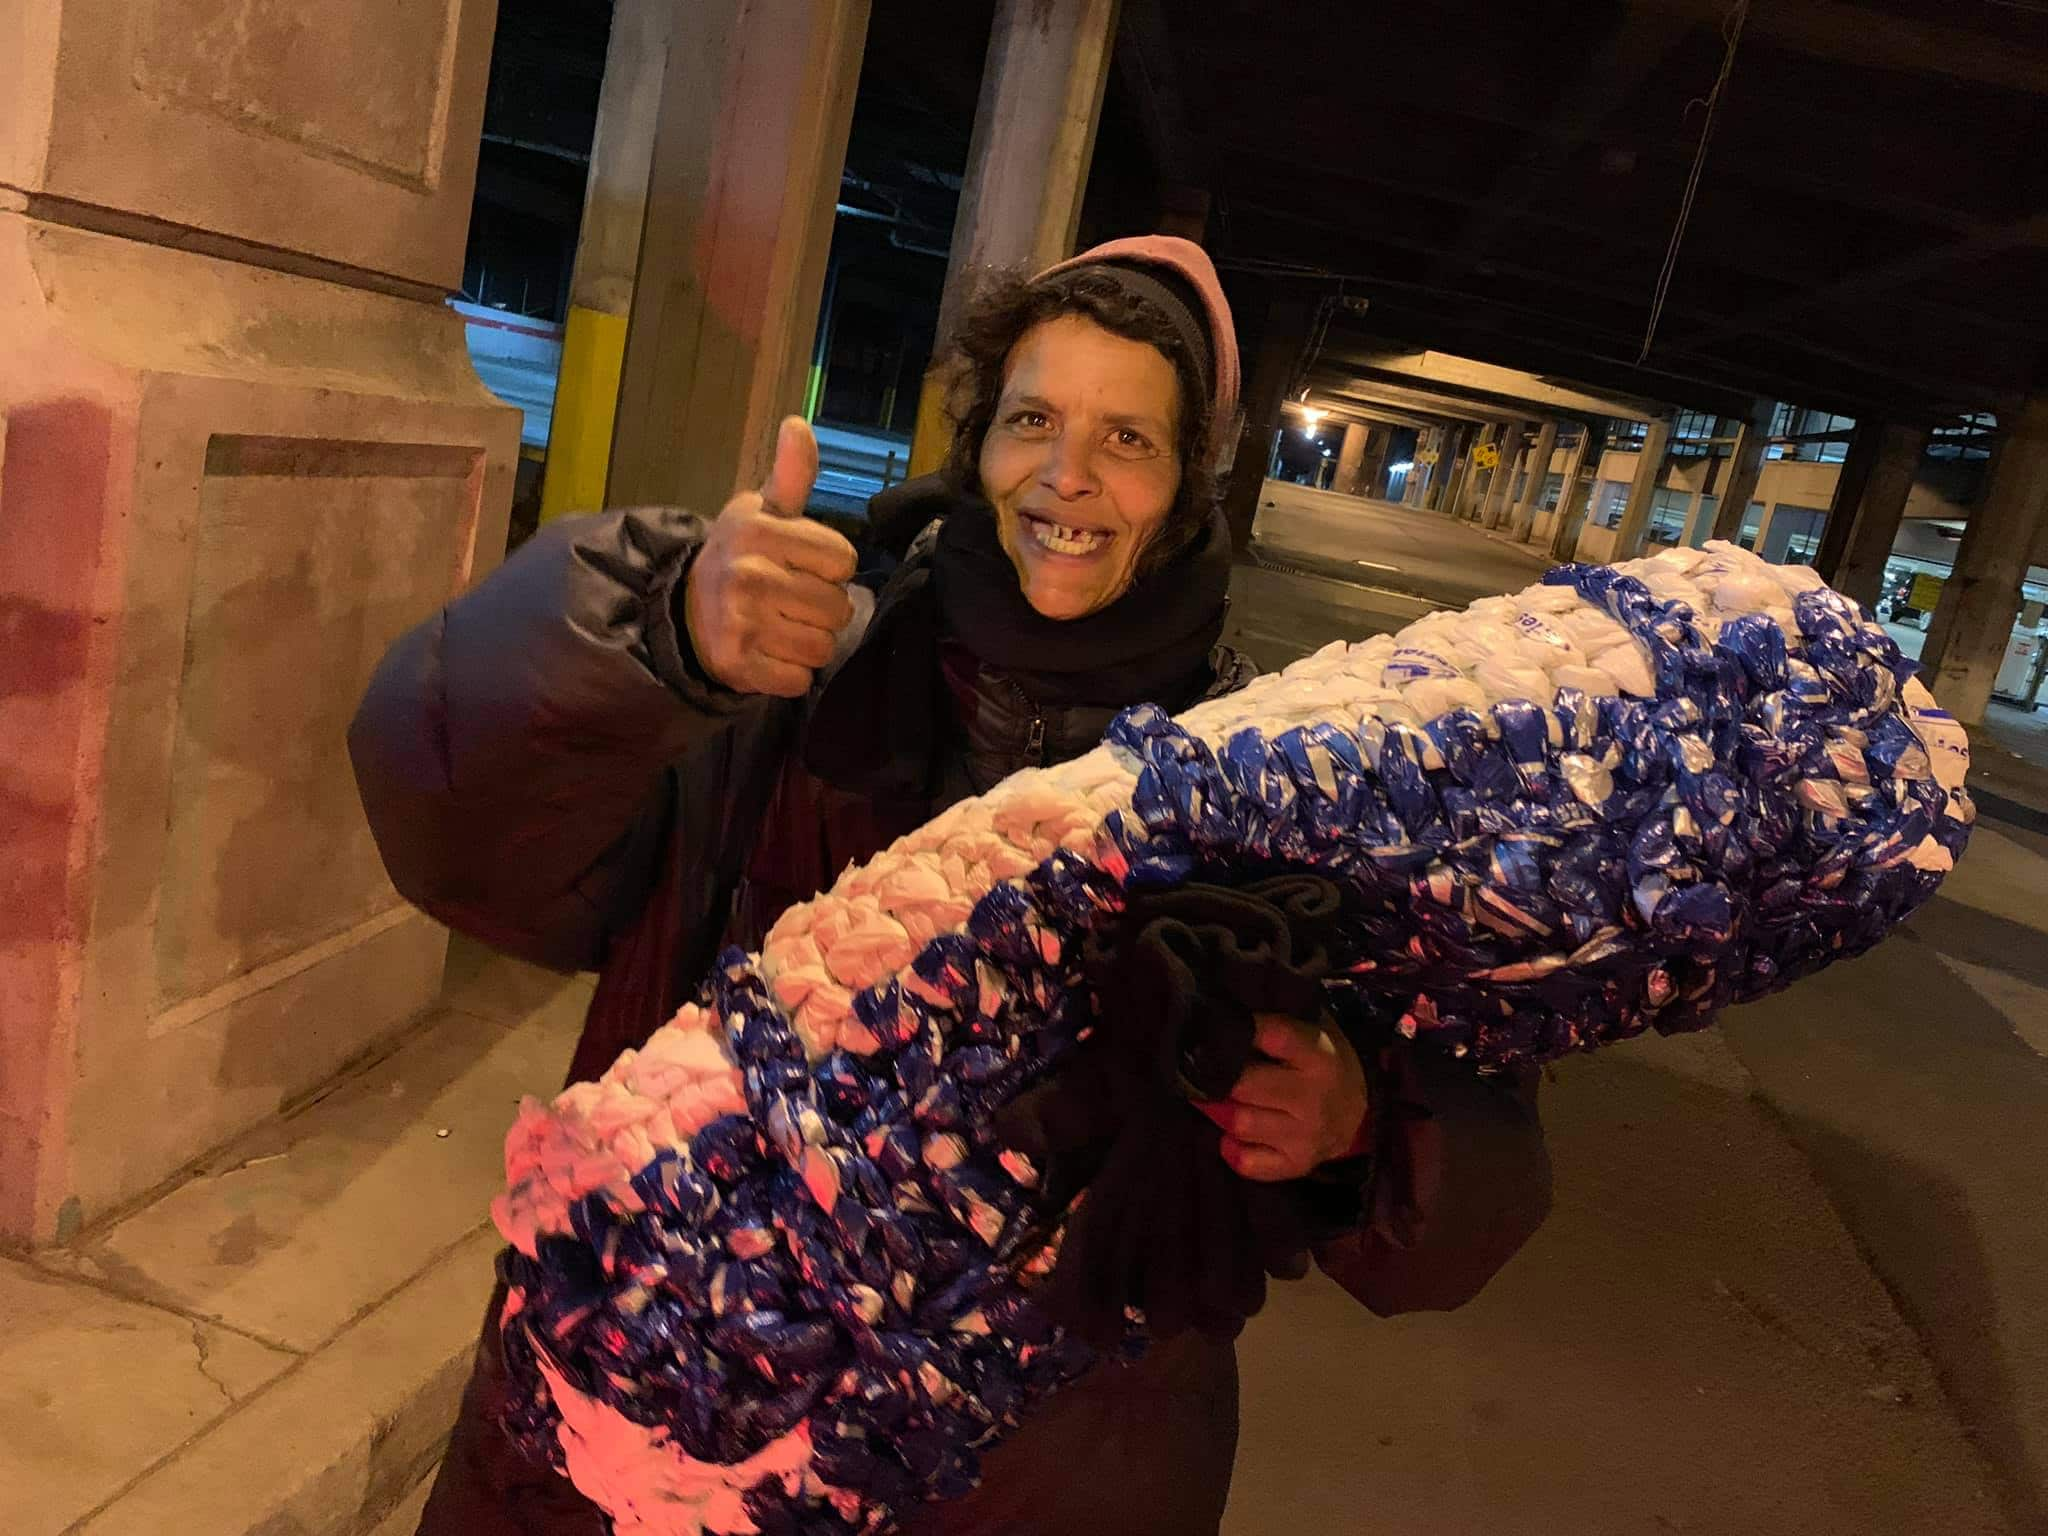 Plastic Grocery Bags turned into Mats for the Homeless